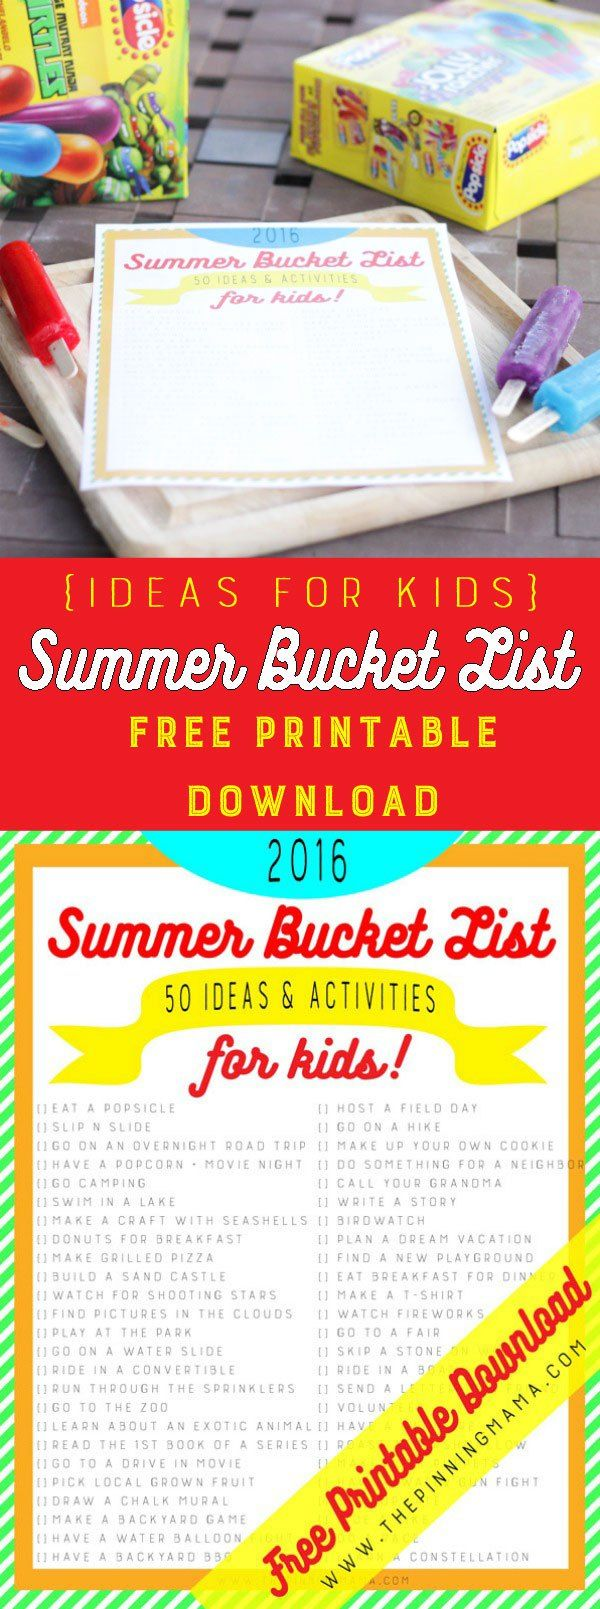 FREE Summer Bucket List - 50 ideas and activities to keep your kids busy this summer! This a a great way to keep your kids having fun and making memories this summer!  Get the free printable download and use our list, or make your own with the customizable version! Kick summer off with one of the brand new flavors of Popsicles and keep having fun all summer long! #OriginalPopsicle **AD